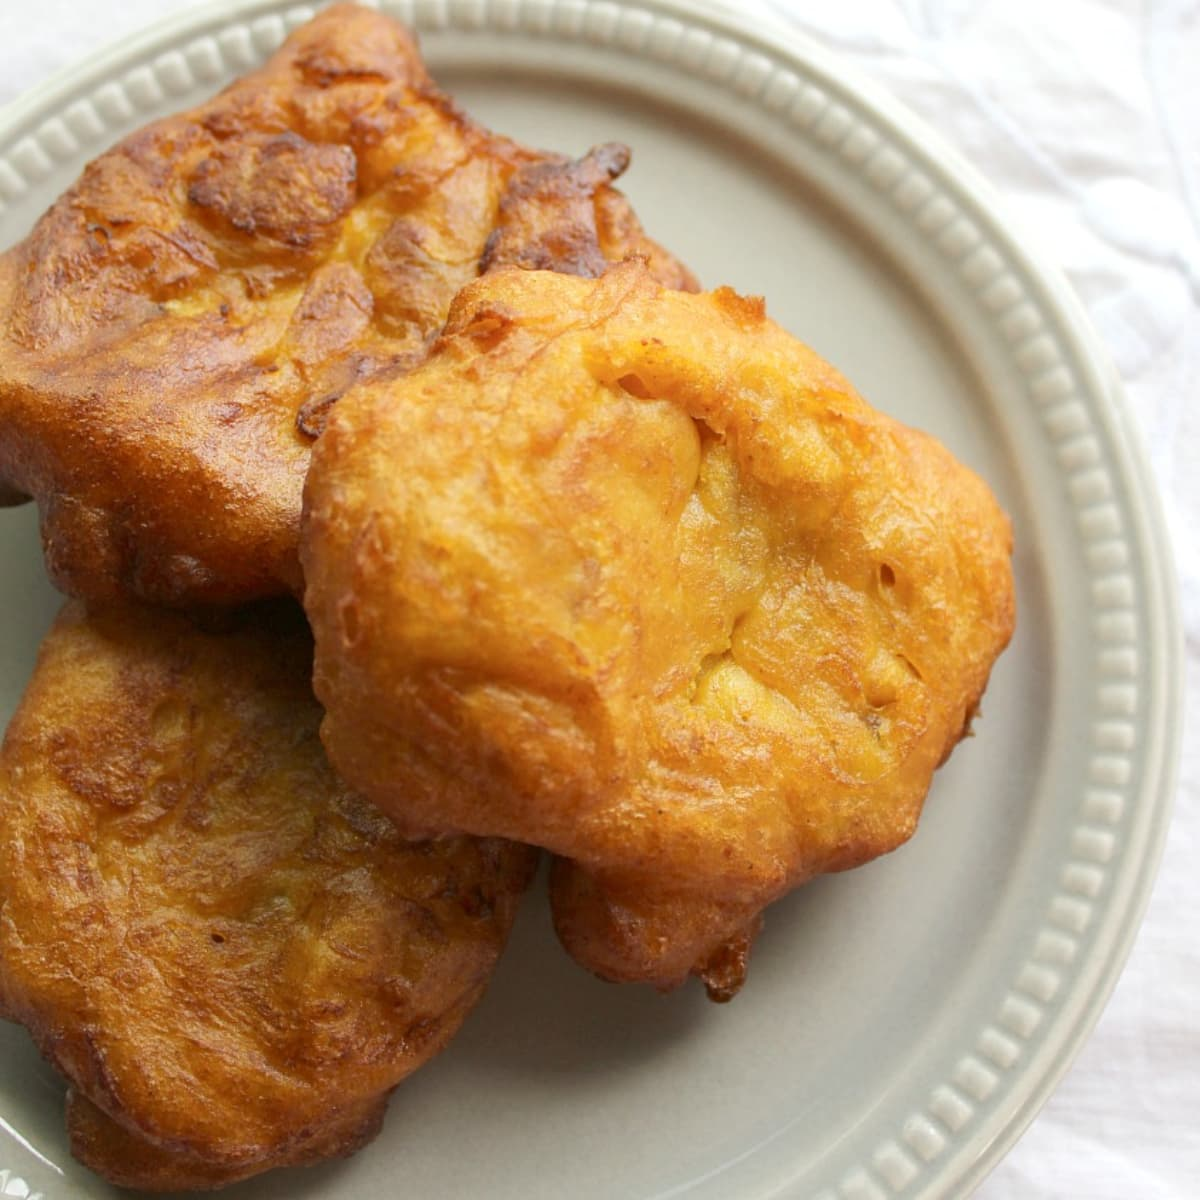 Three pumpkin fritters on a small gray plate